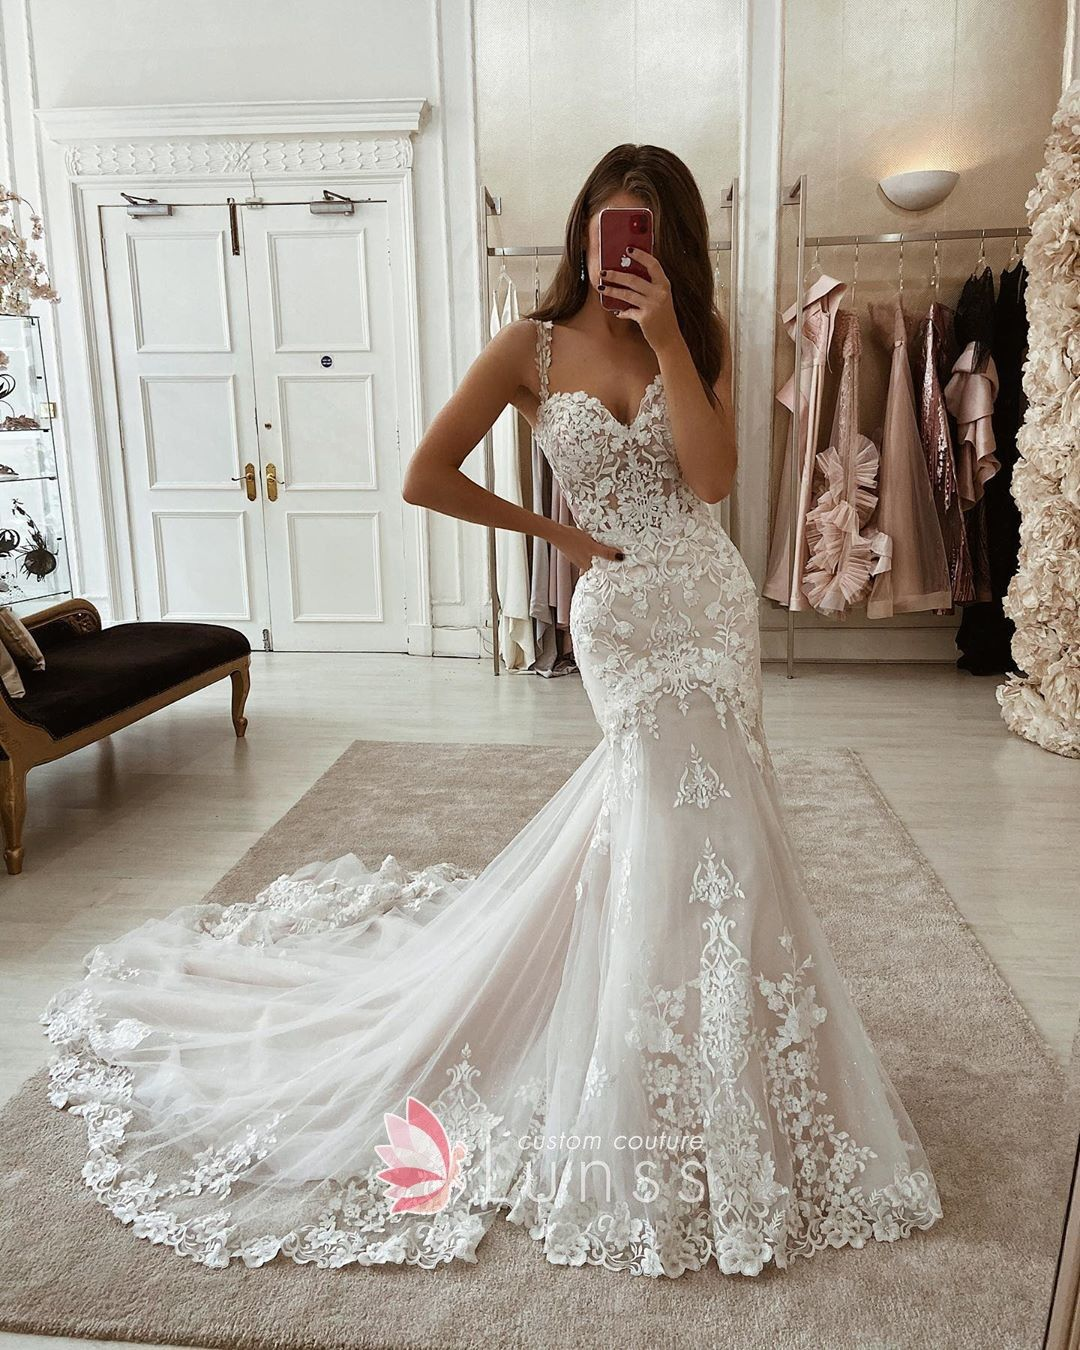 Custom Made Dresses Wedding And Prom Gowns Online Wedding Dresses Cute Wedding Dress Dream Wedding Ideas Dresses [ 1350 x 1080 Pixel ]